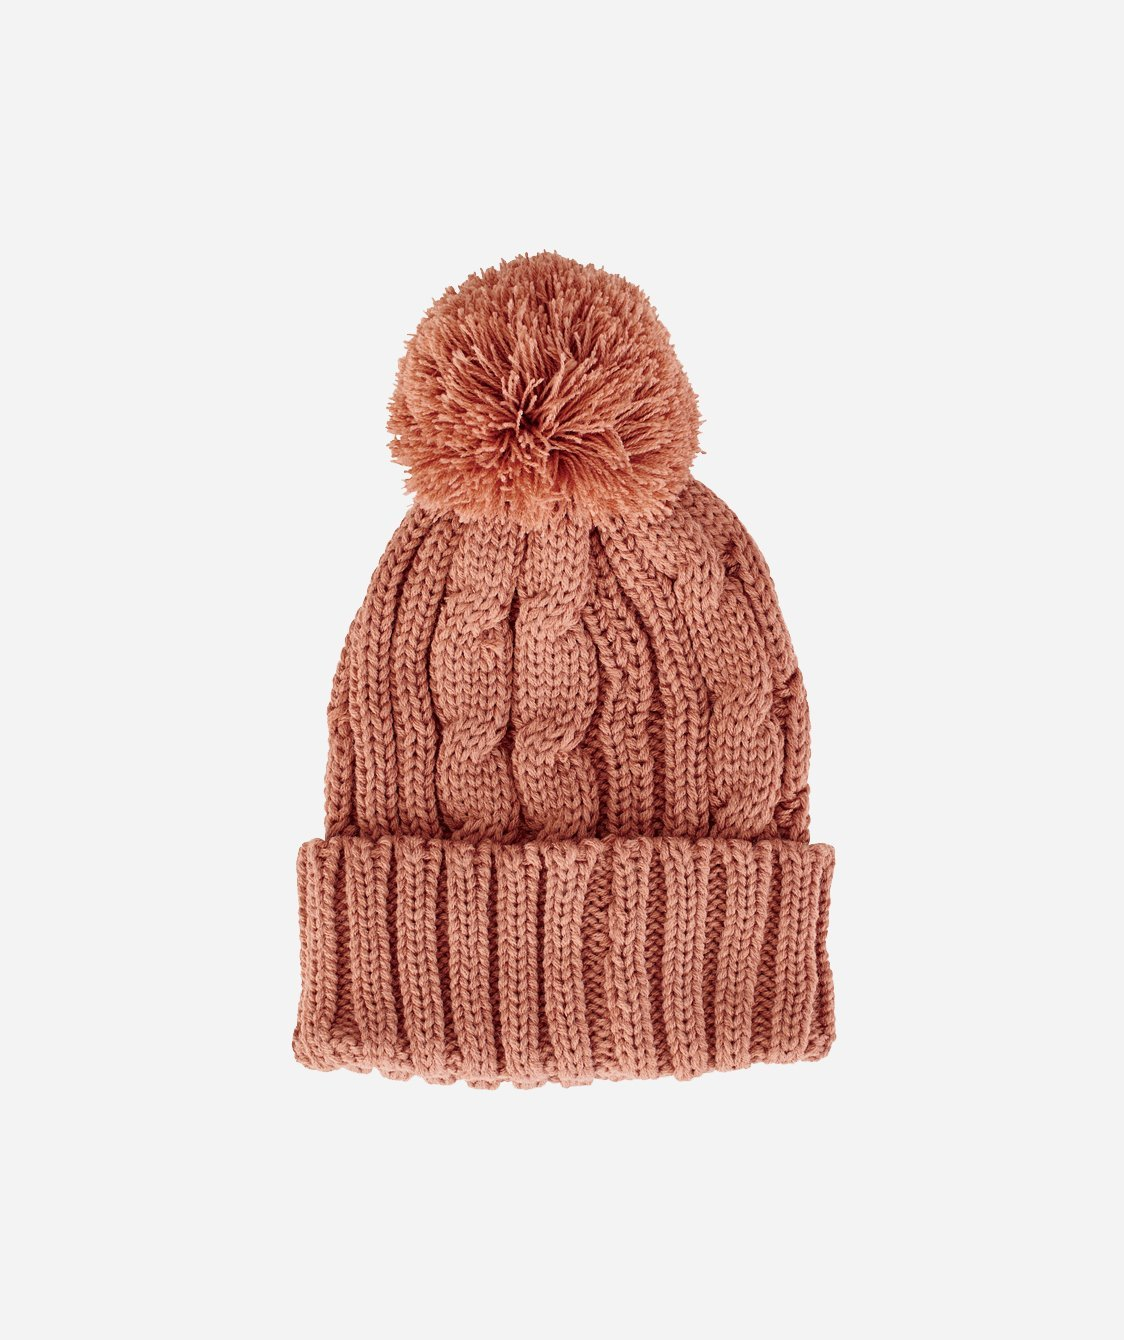 Womens Solid Cable Knit Beanie (KNH3423) - San Diego Hat Company 5bcc852296e